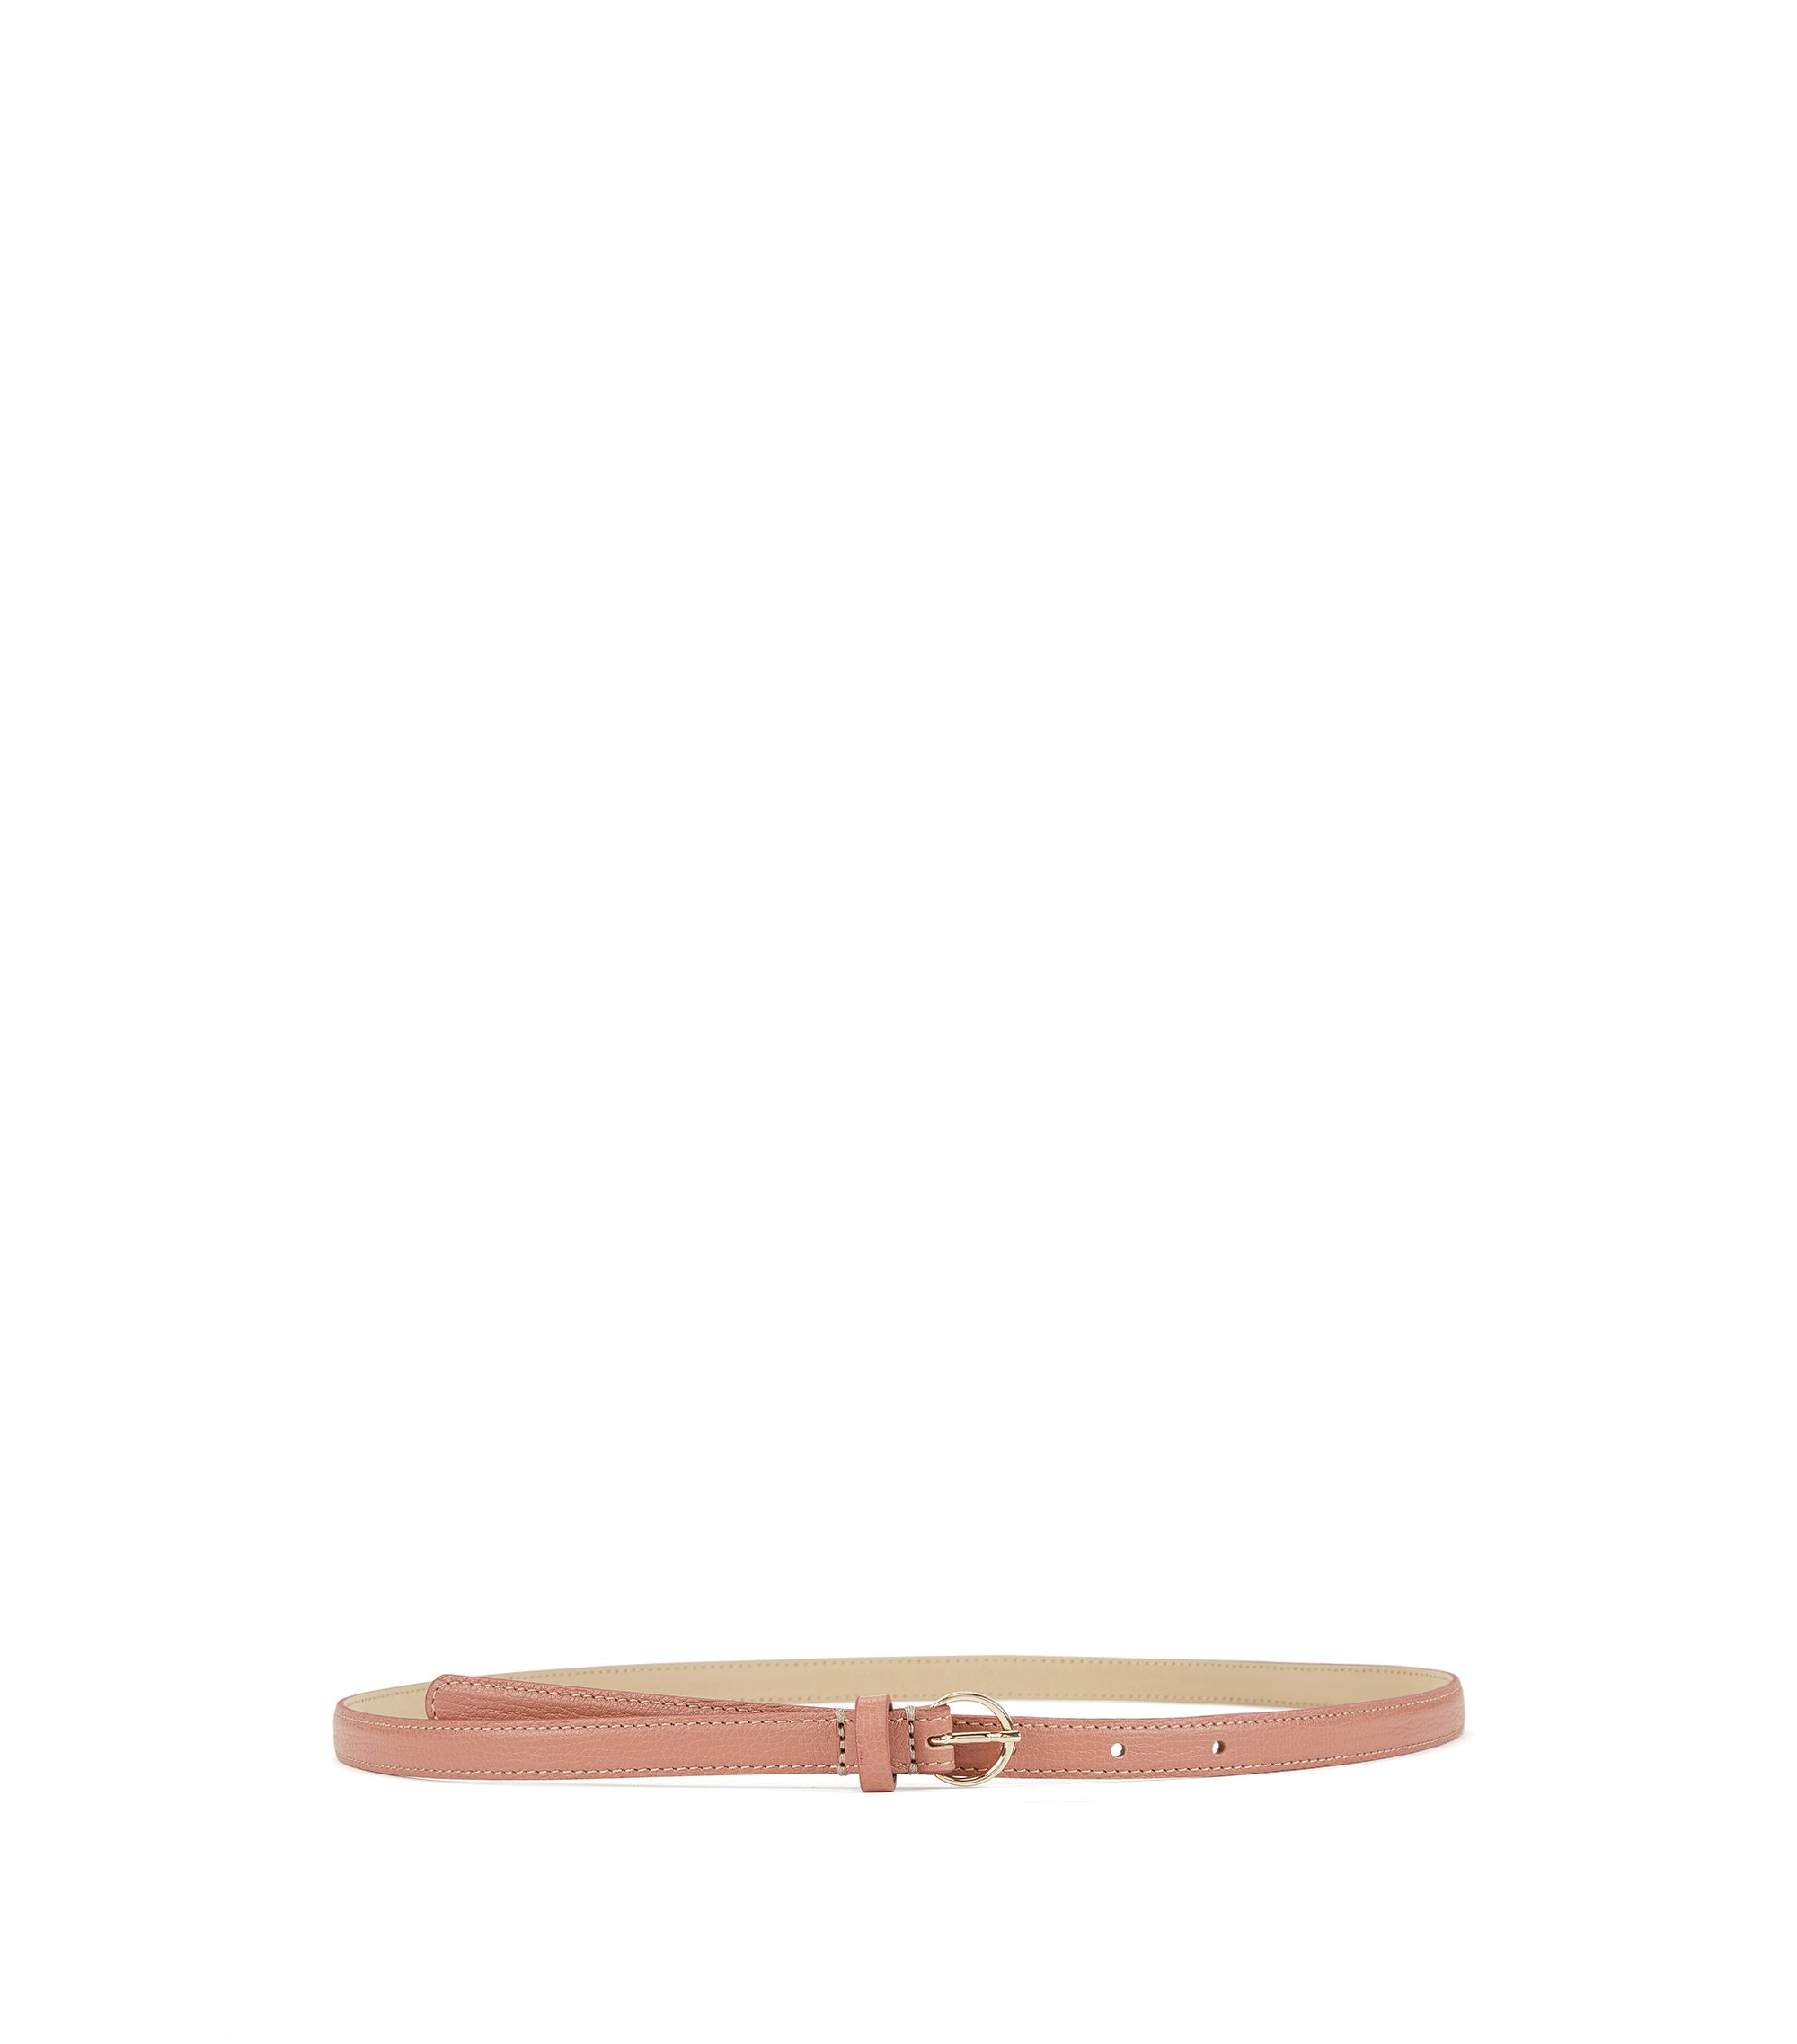 Slim belt in grained Italian leather, Beige